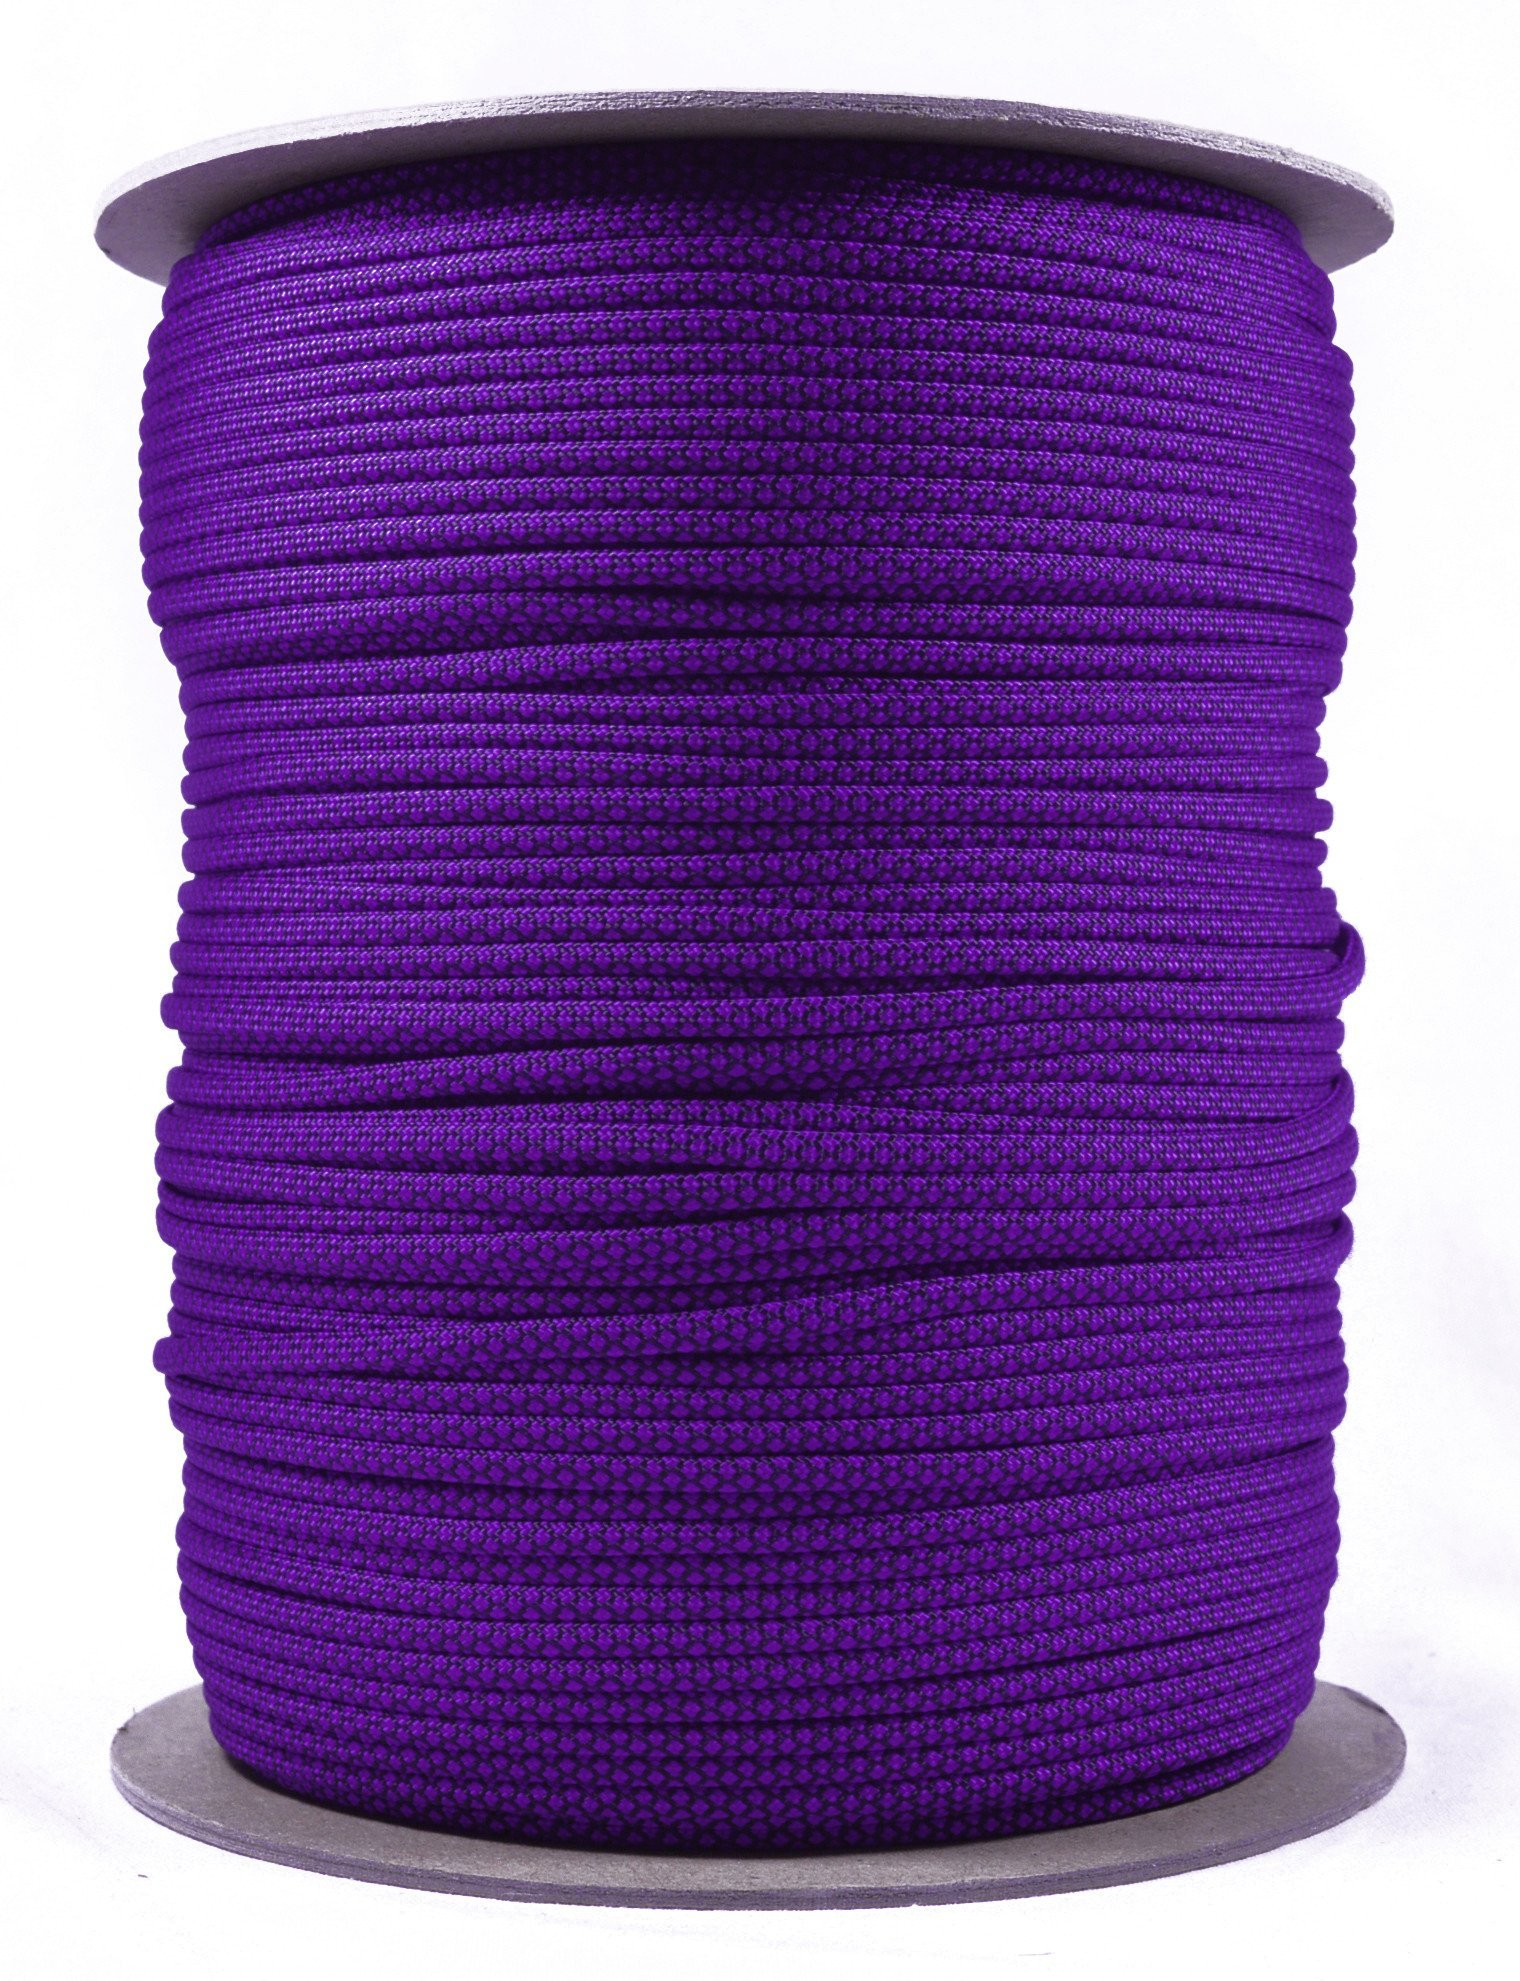 BoredParacord Brand Paracord (1000 ft. Spool) - Acid Purple Diamonds by BoredParacord (Image #1)